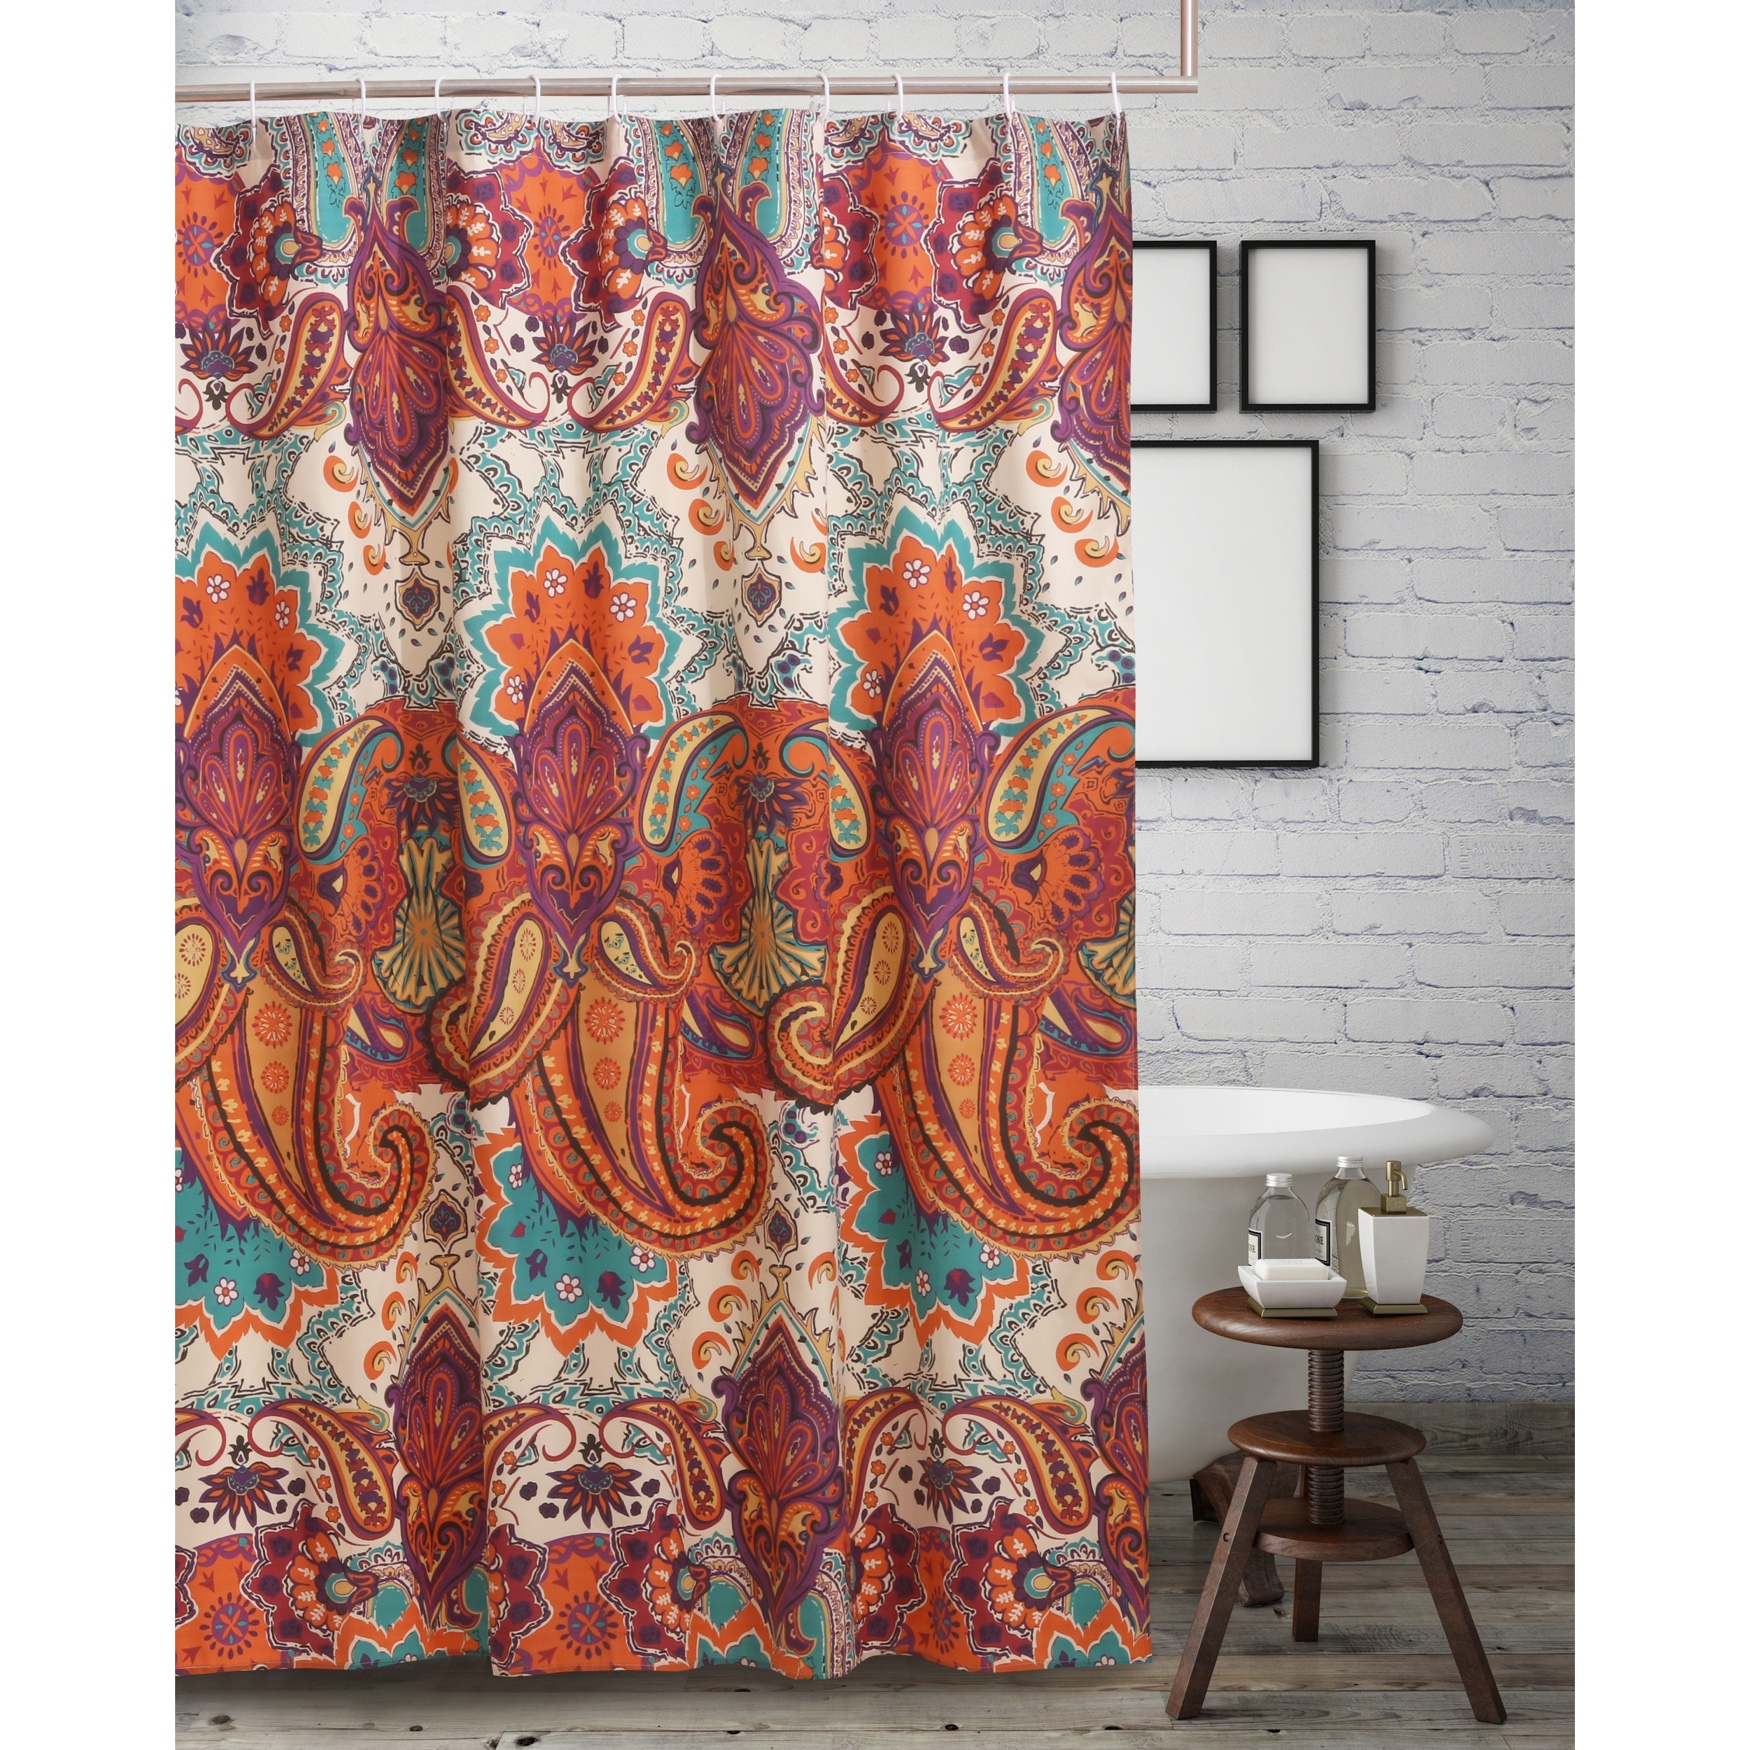 Nirvana Spice Shower Curtain by Greenland Home Fashions, SPICE